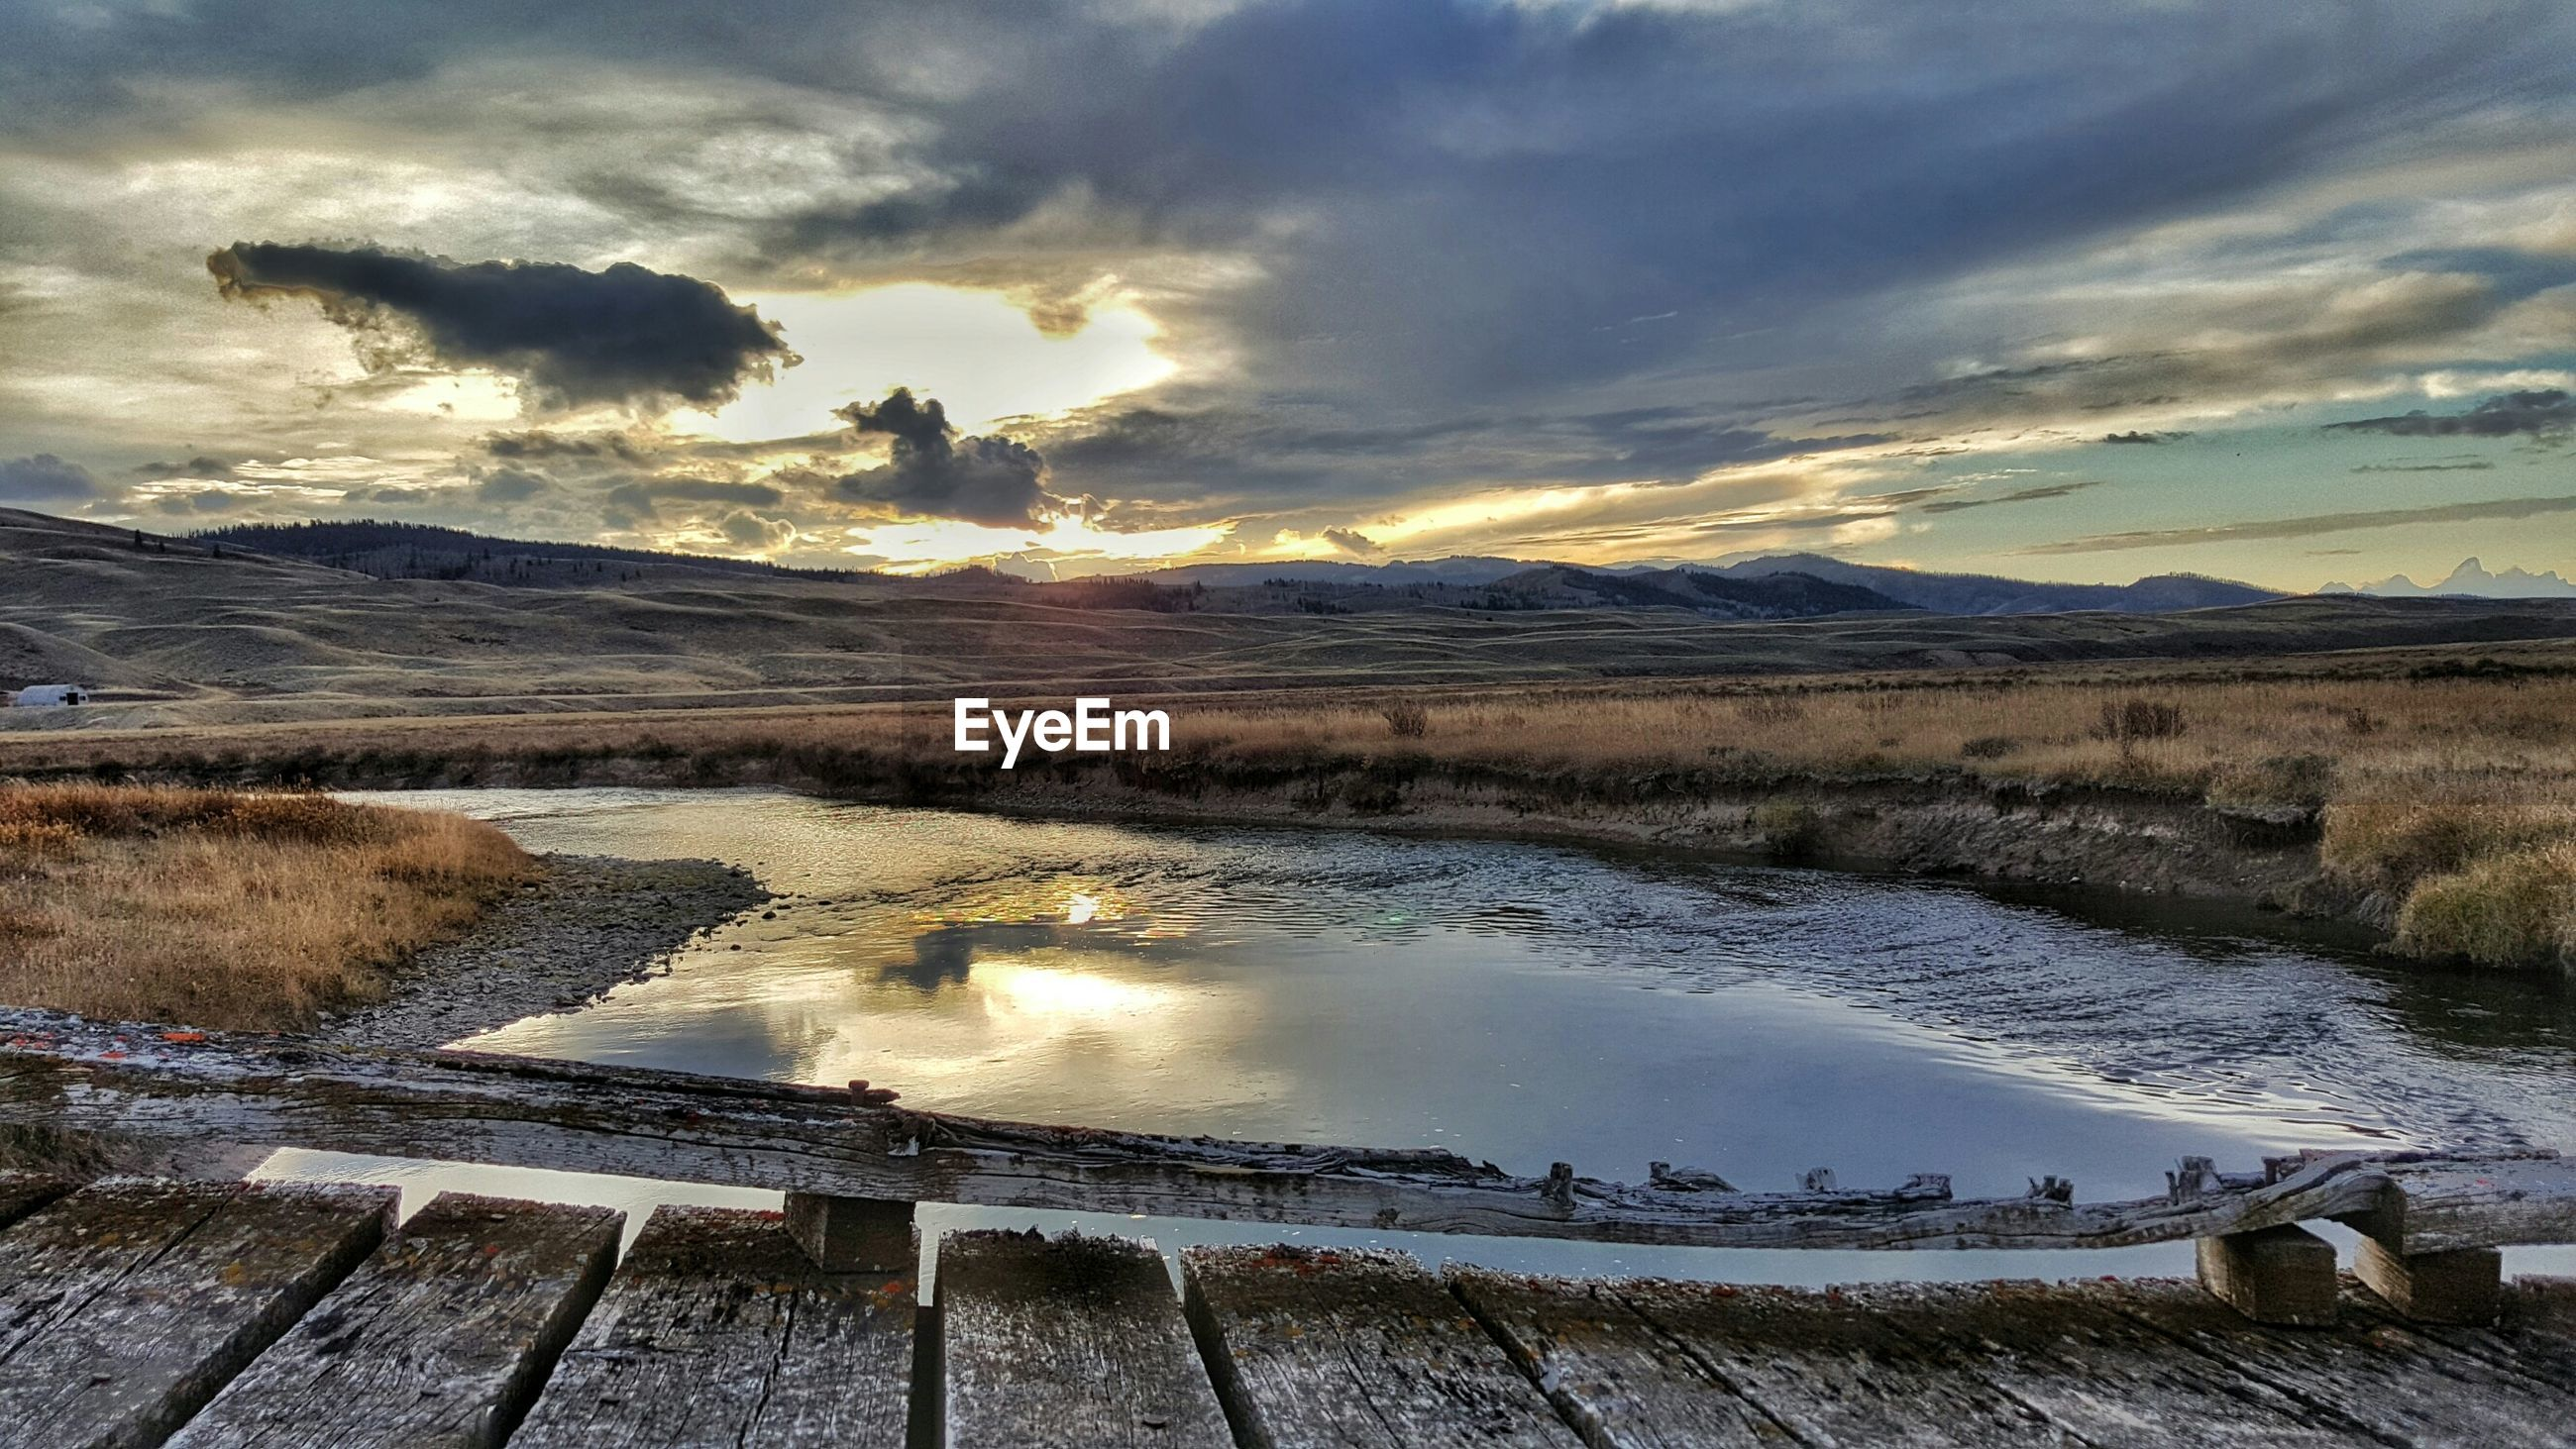 sky, cloud - sky, water, tranquil scene, cloudy, weather, tranquility, scenics, nature, landscape, beauty in nature, lake, cloud, sunset, high angle view, field, mountain, non-urban scene, winter, reflection